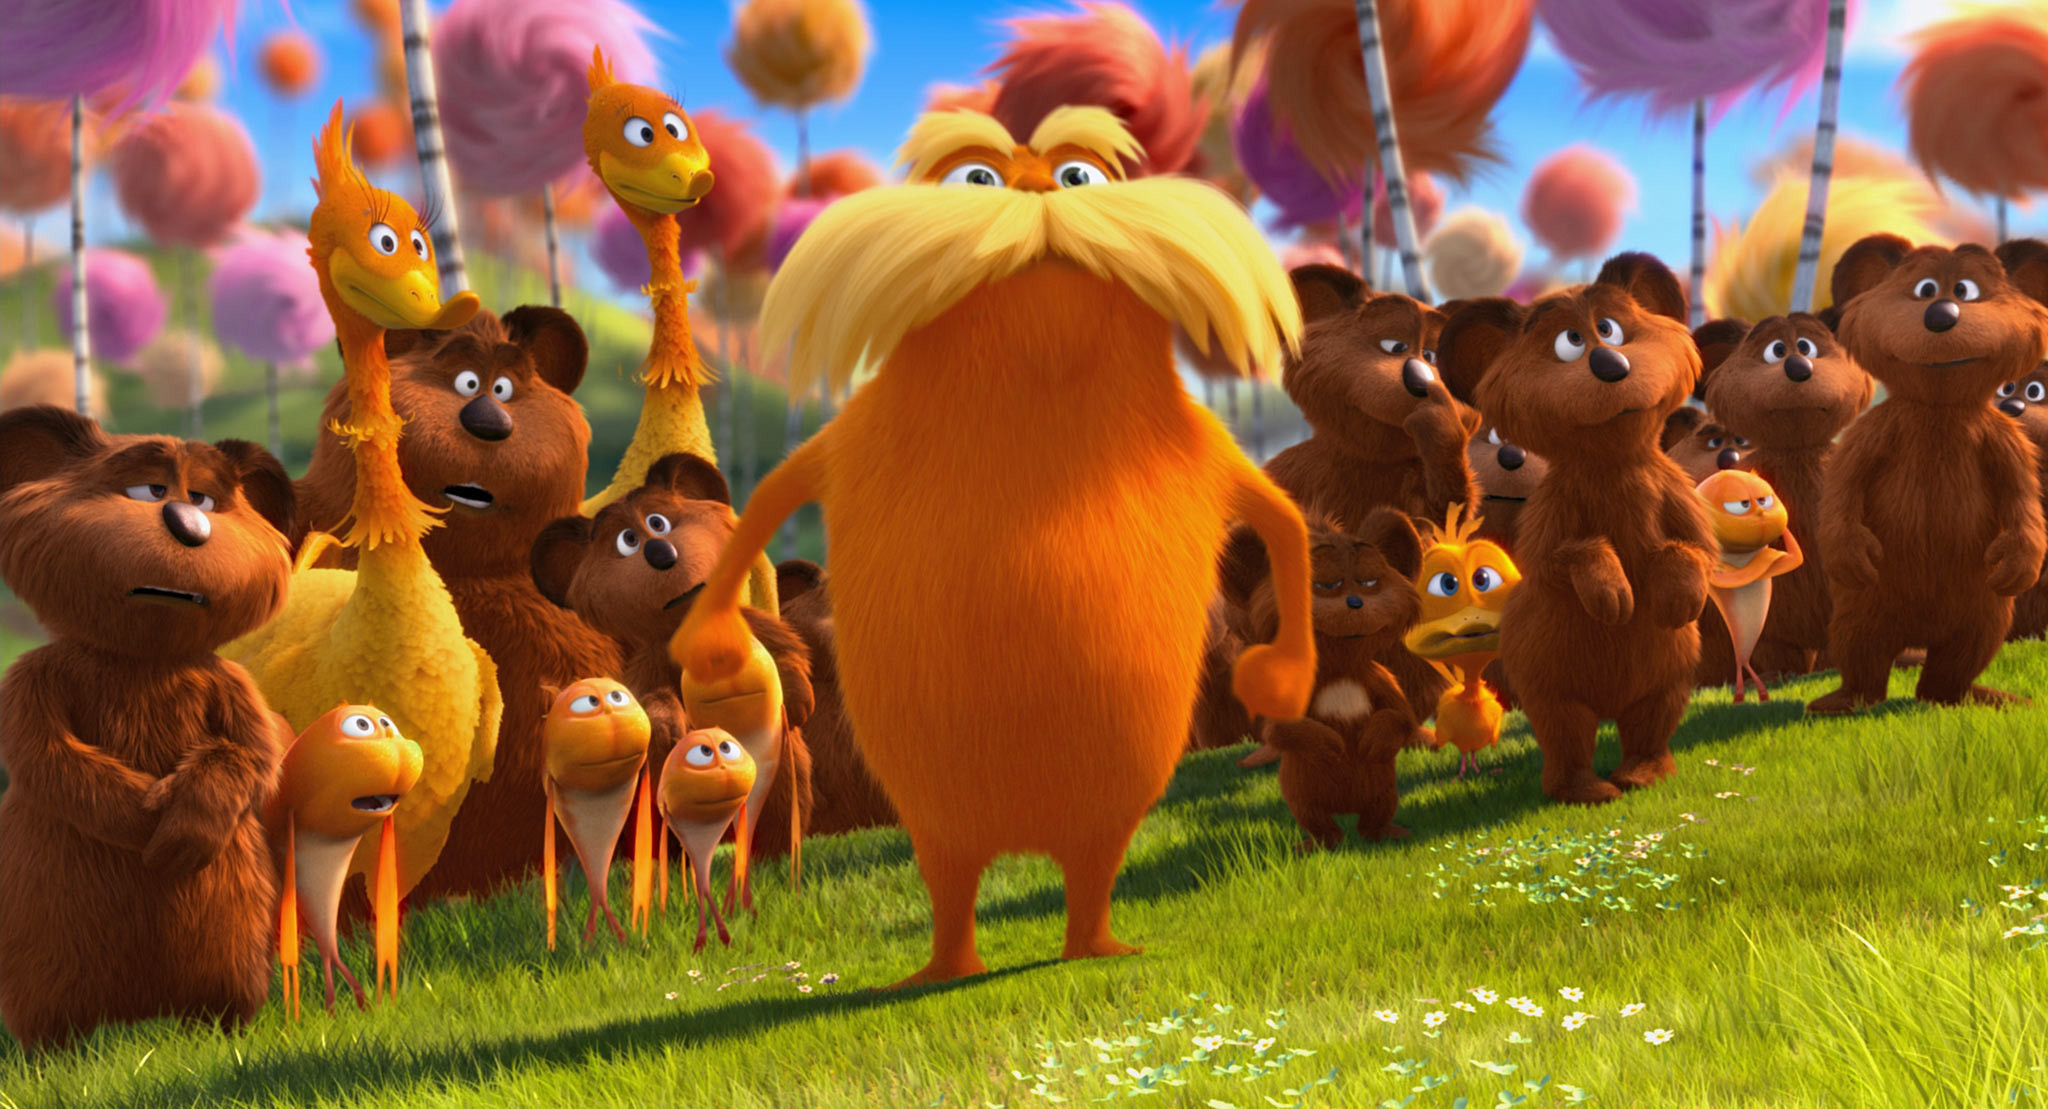 Res: 2048x1109, Dr Seuss The Lorax Wallpaper 4 - 2048 X 1109